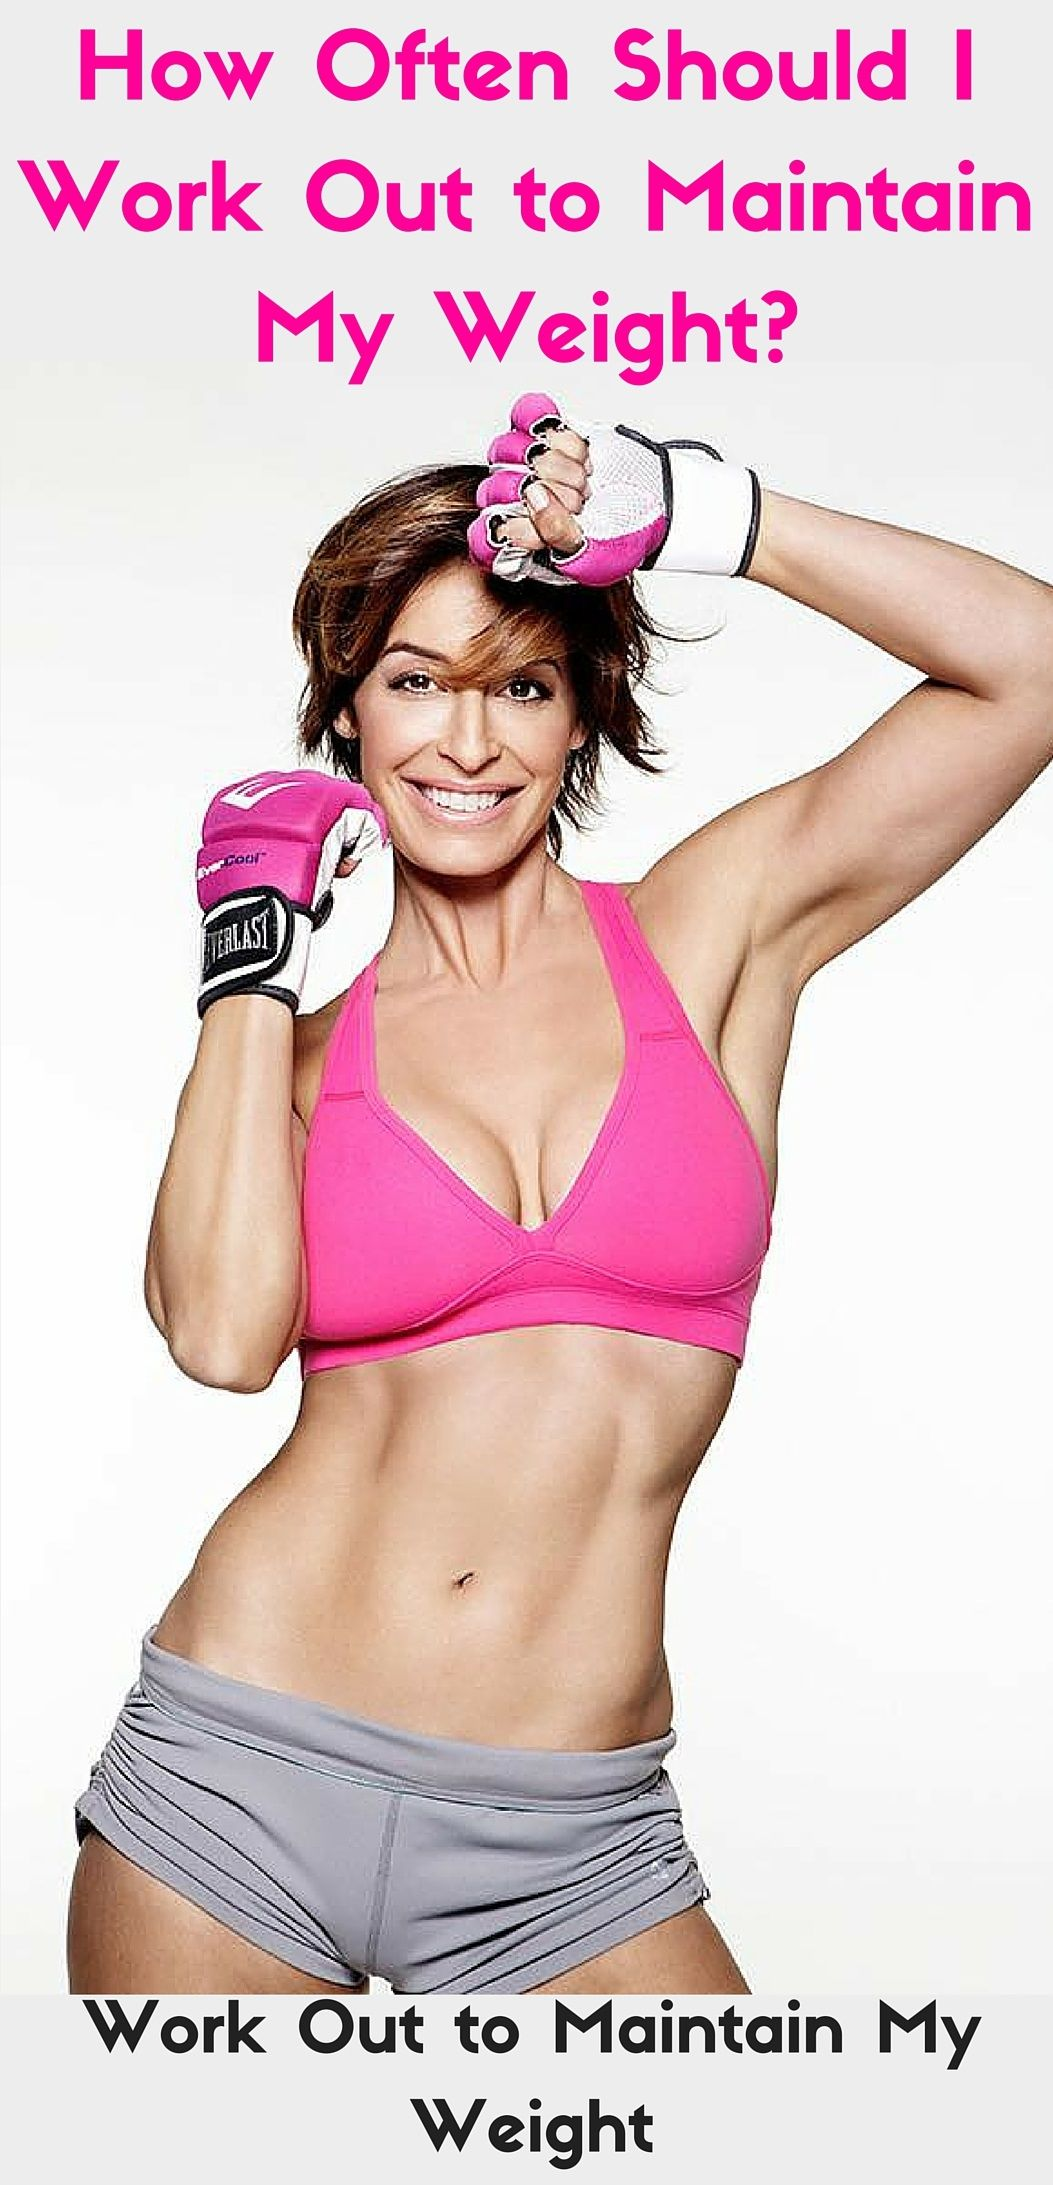 #weightloss #burnfat #guide #women #Workouts #Fitness Workout to maintain  body